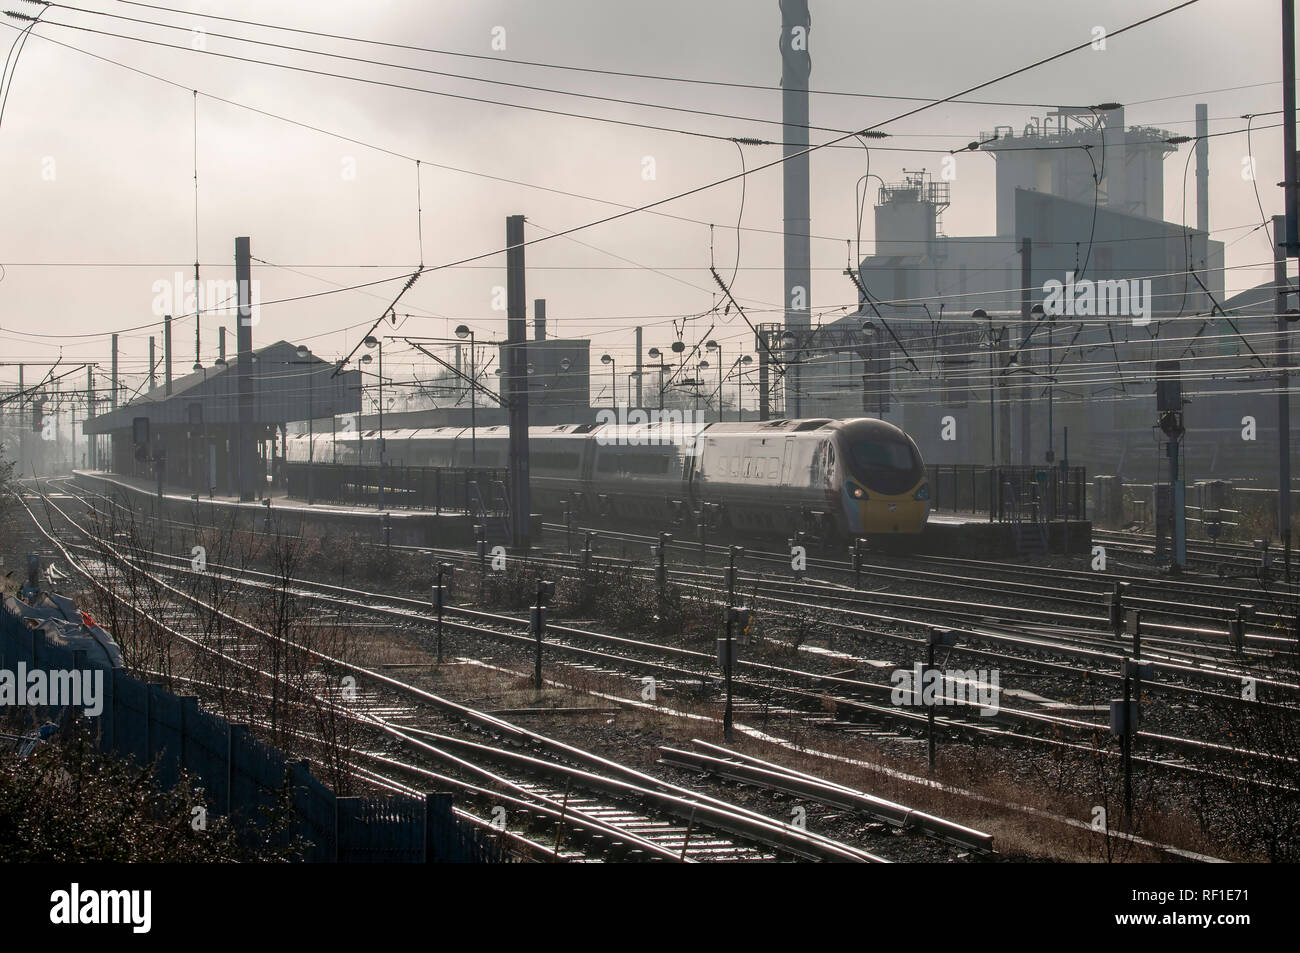 Misty Bank Quay station with Unilever factory in background. Stock Photo